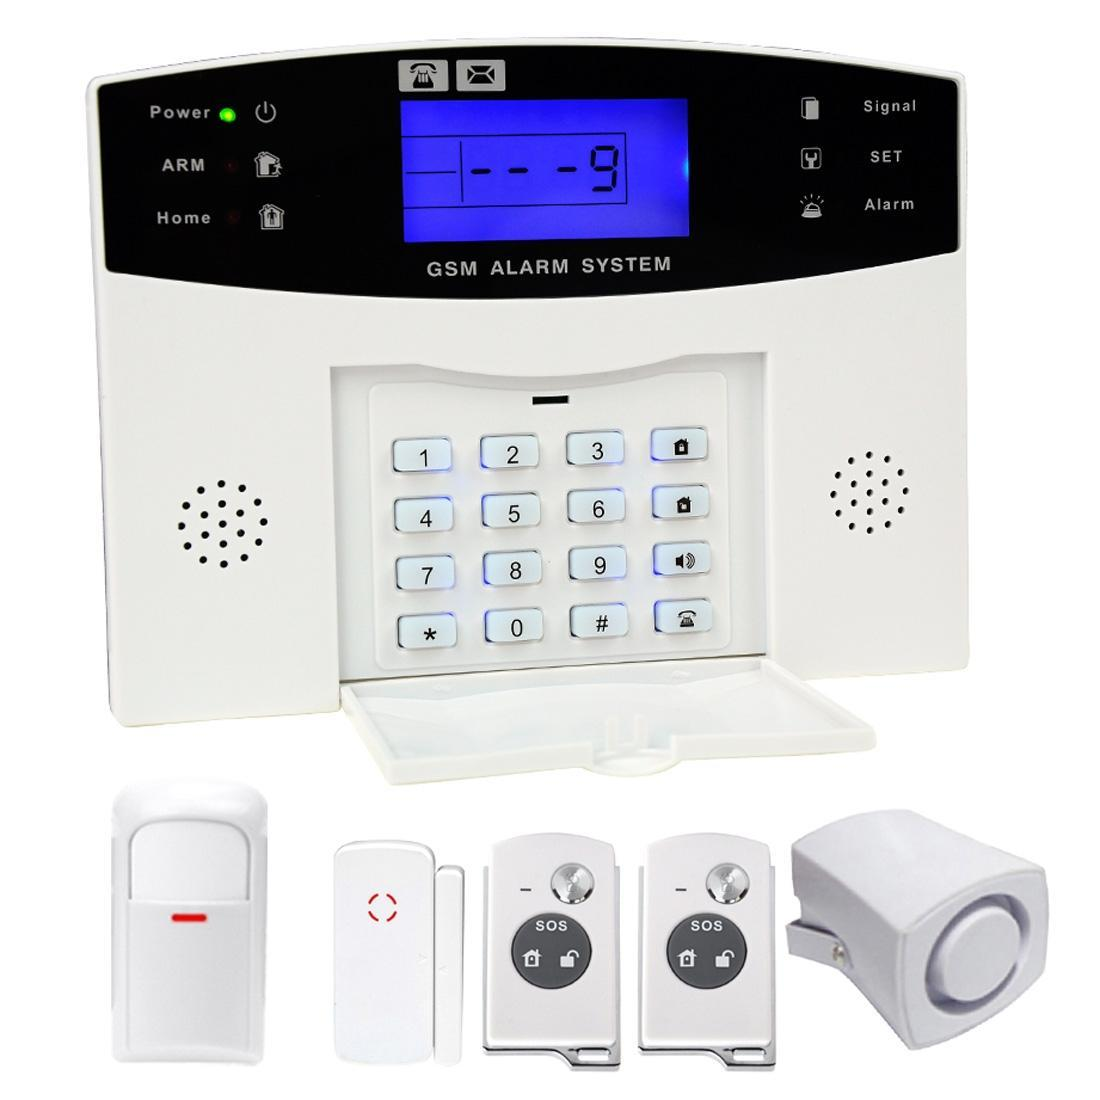 YA-500-GSM 6 in 1 Kit Wireless 315MHz GSM SMS Security Home House Burglar Alarm System with LCD Screen